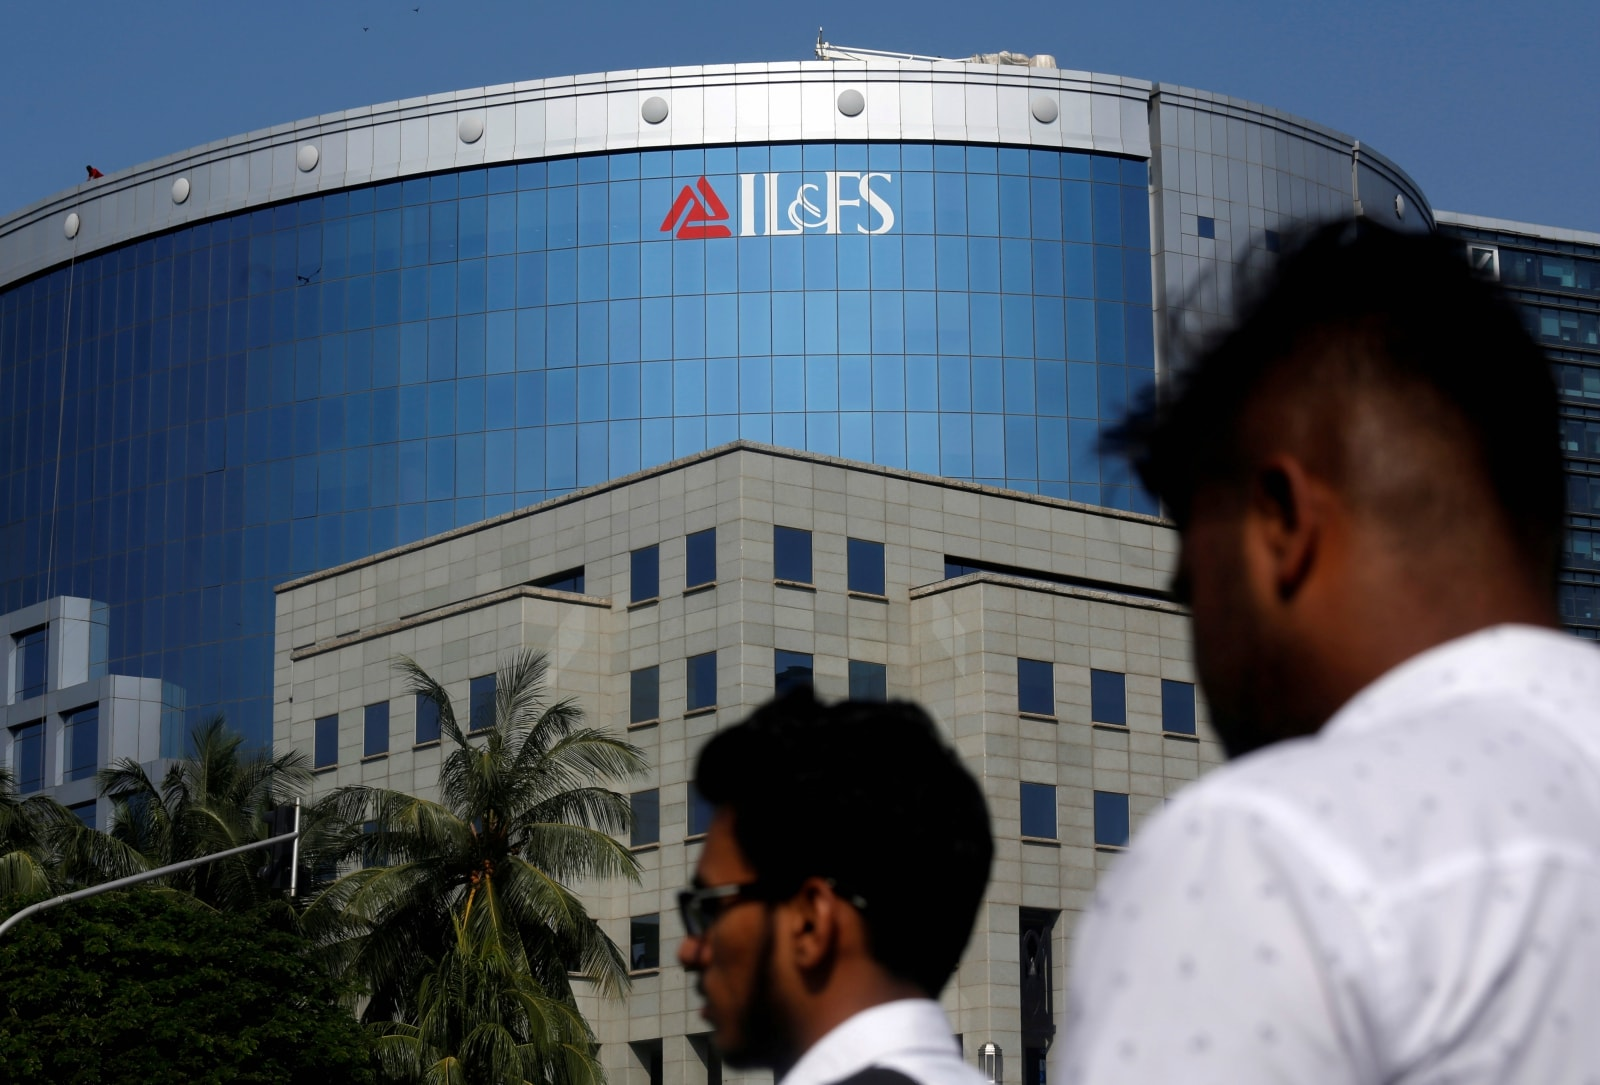 IL&FS Engineering and Construction Company: The company, in an exchange filing, said the Gujarat Metro Rail Corporation Limited terminated the contract for construction of metro stations for Package-1 of North-South Corridor for Ahmedabad Metro Rail Project Phase-1. (Picture credits: Reuters)